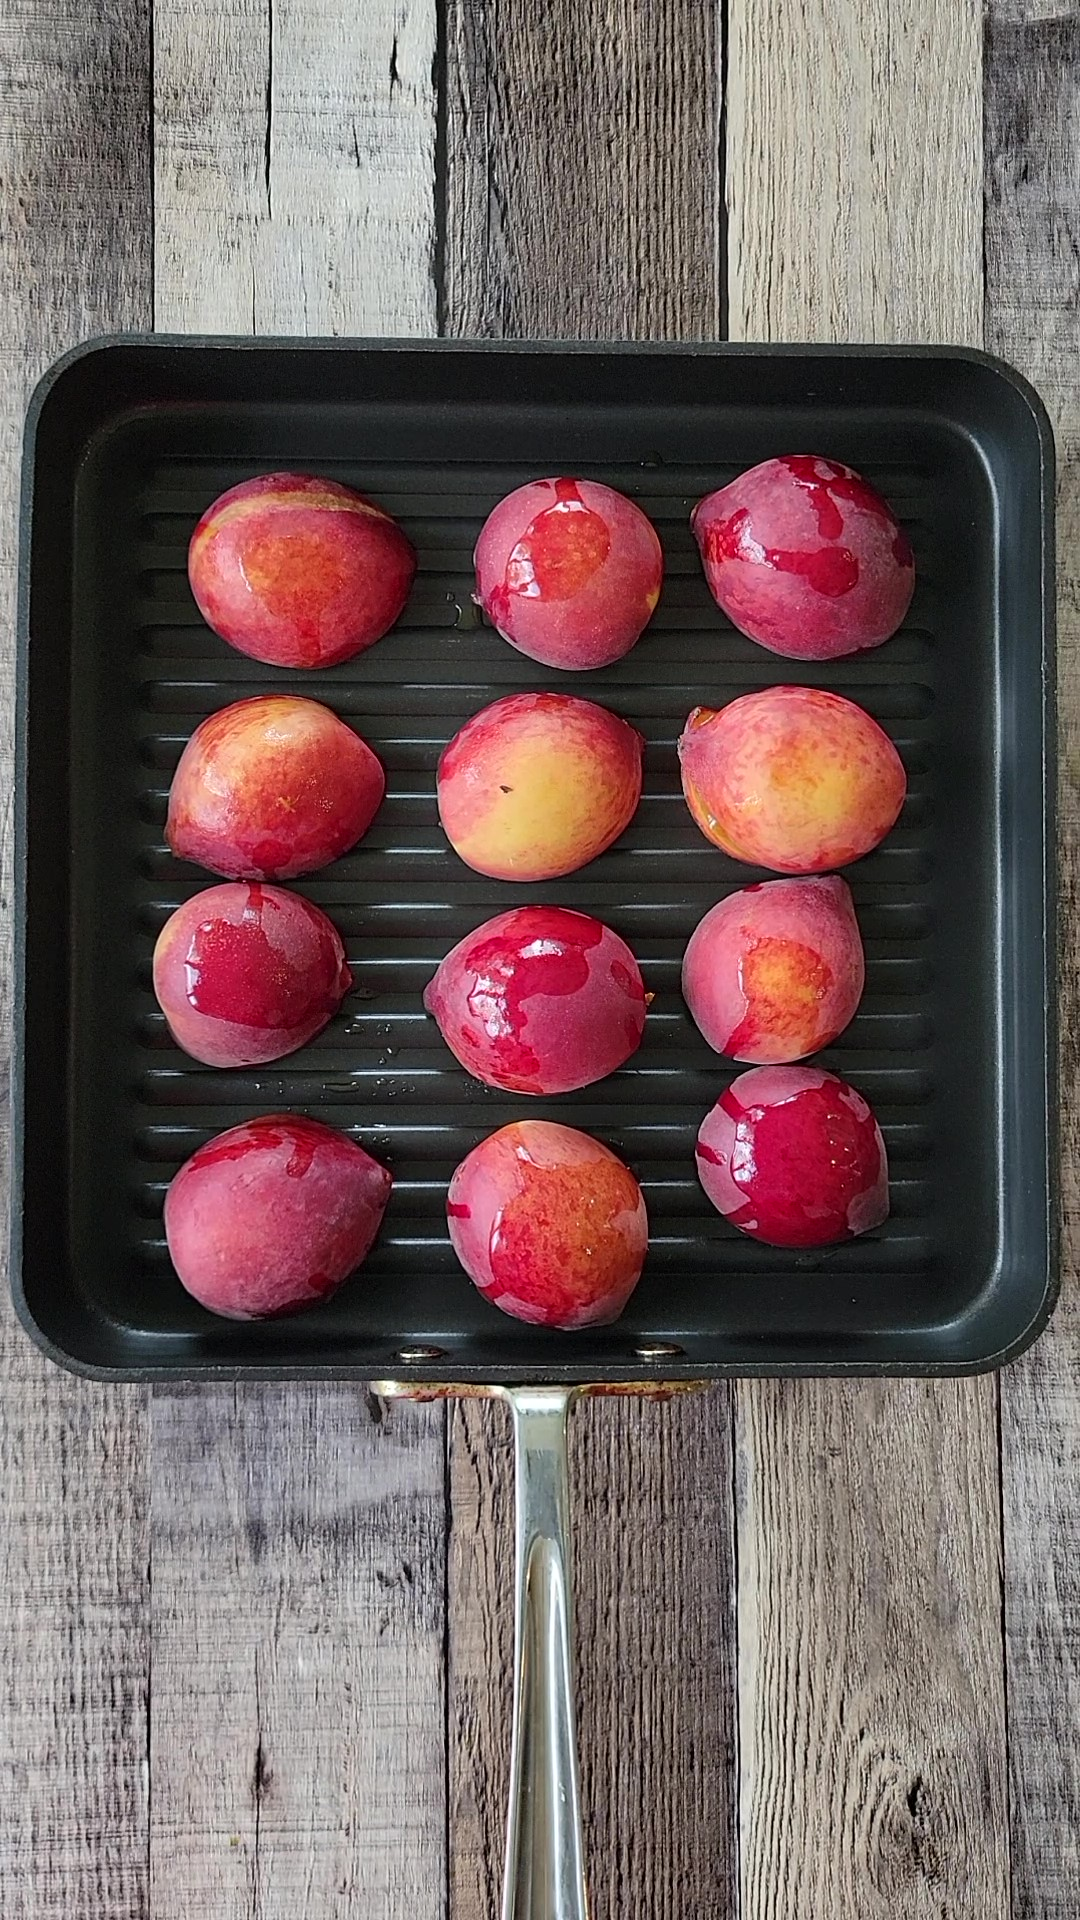 This is what peaches look like on a grill pan.